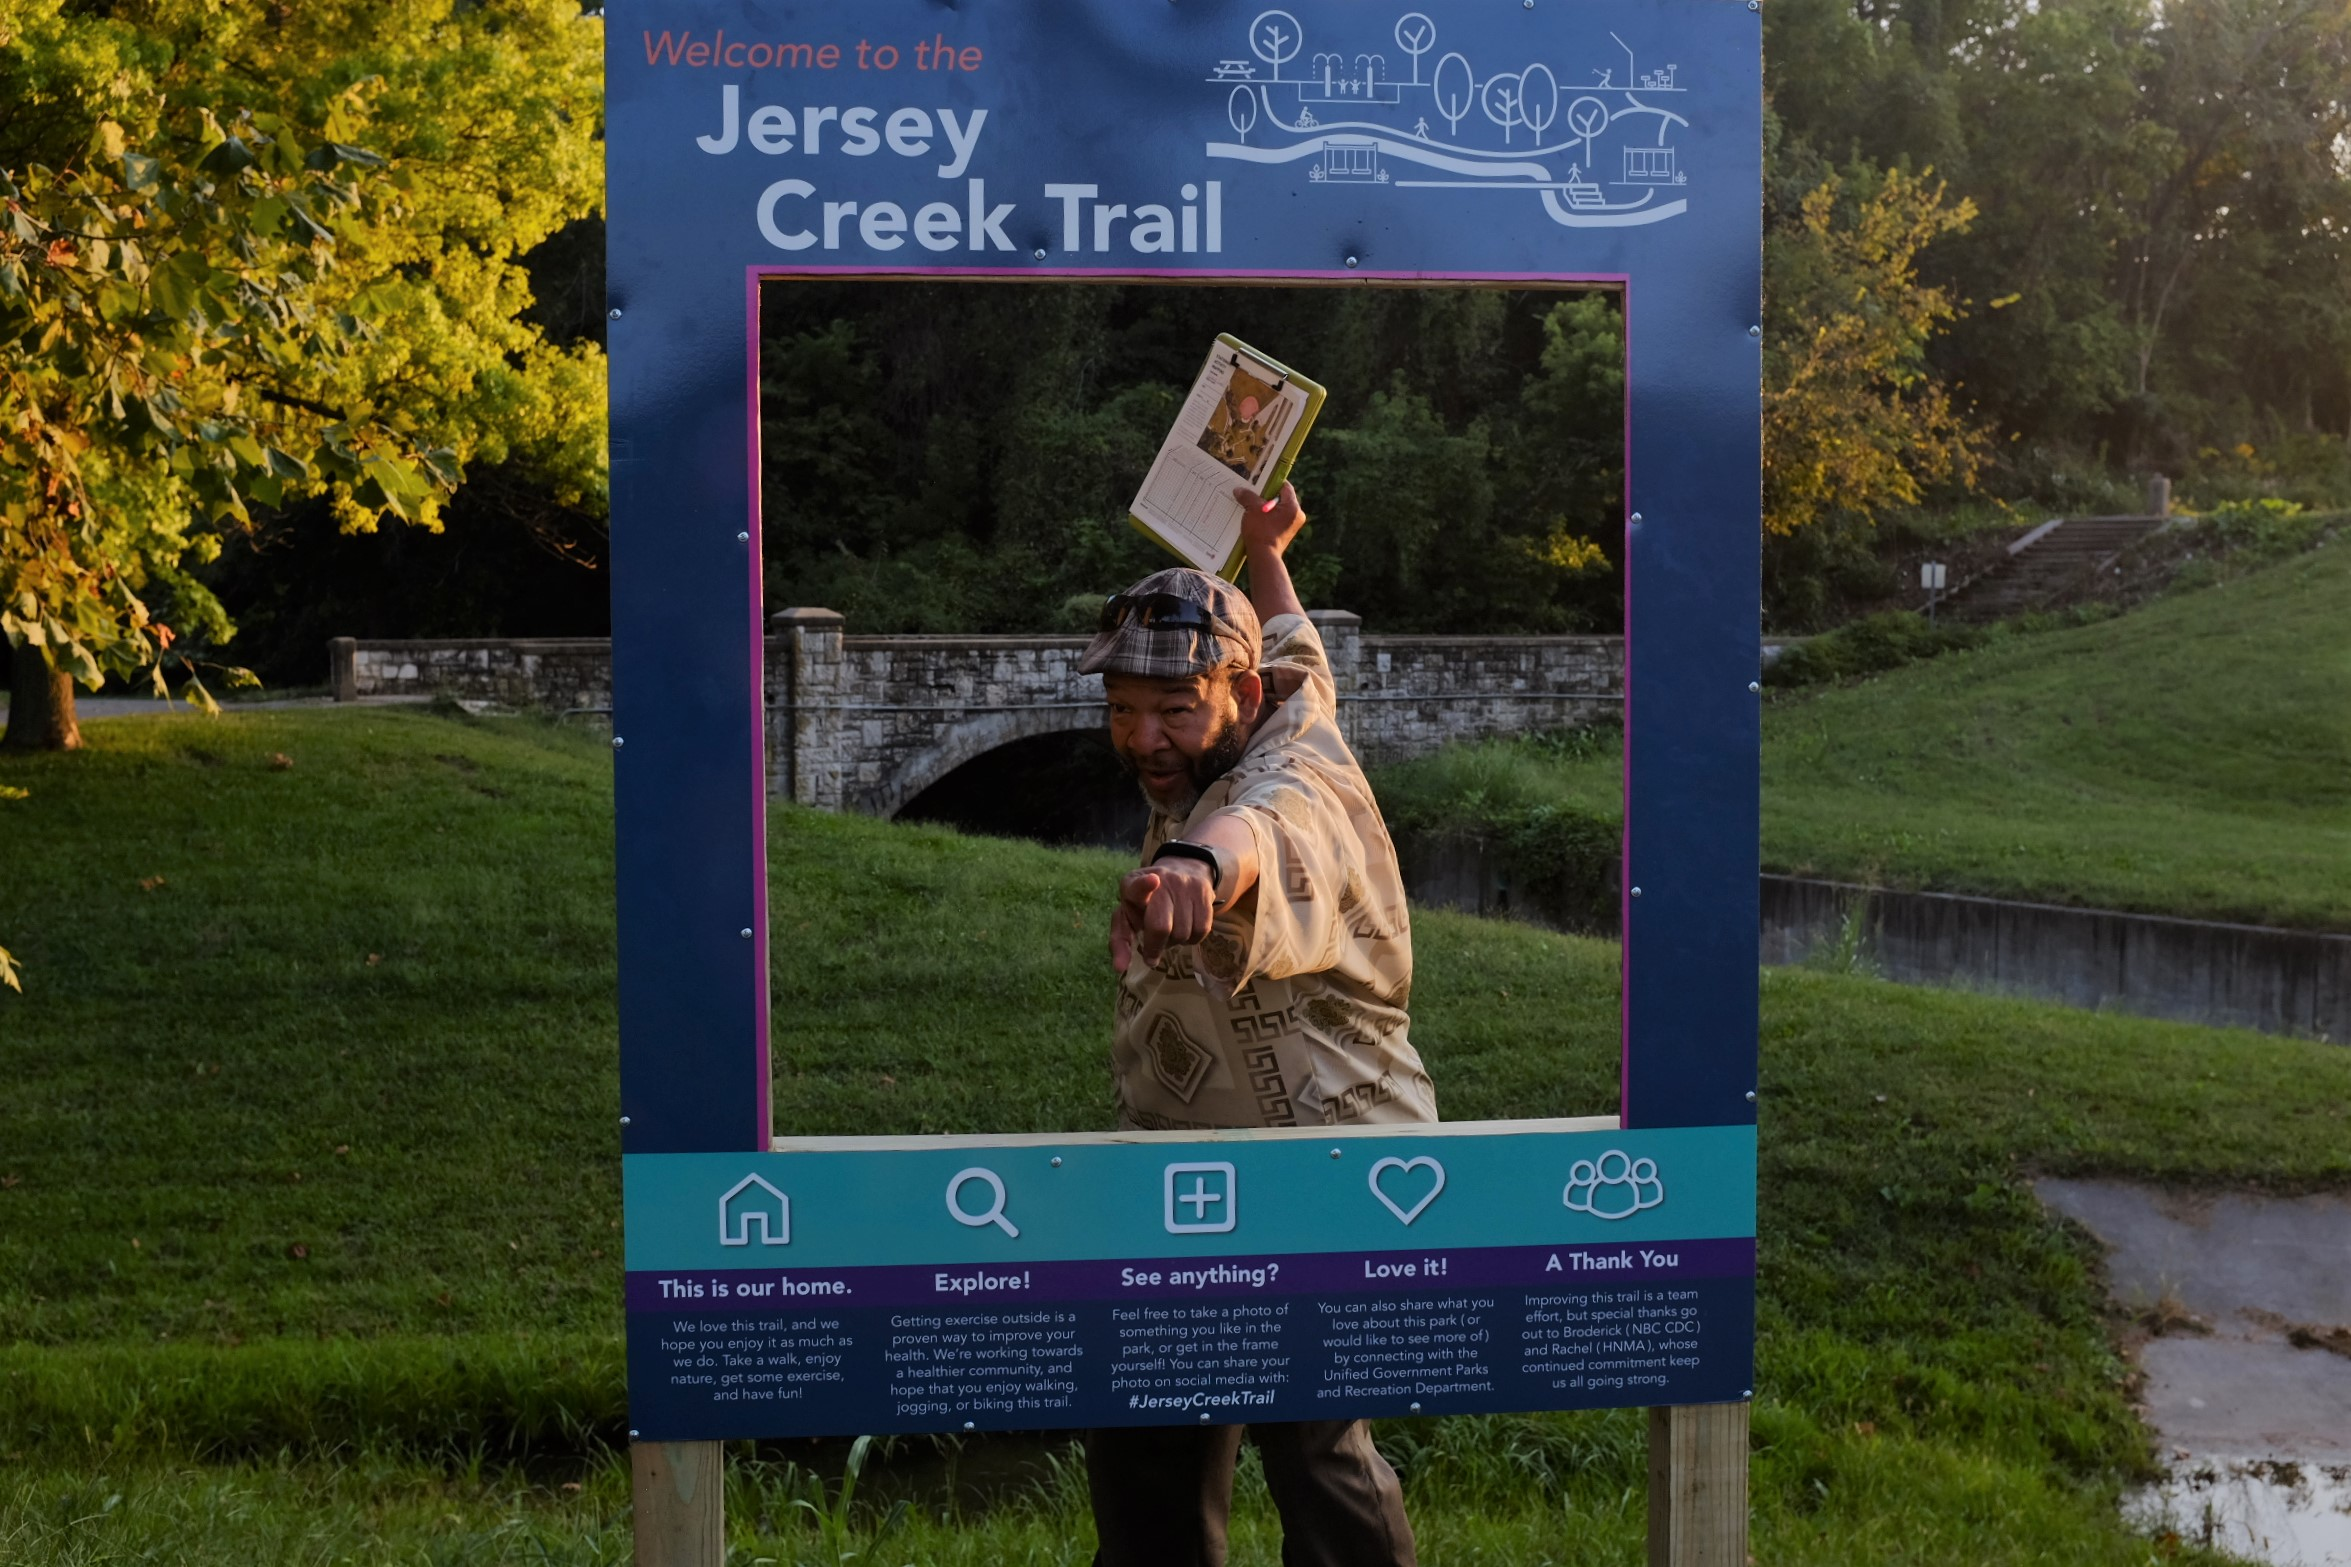 Broderick Crawford, the man keeping the ball rolling on the Jersey Creek Trail.